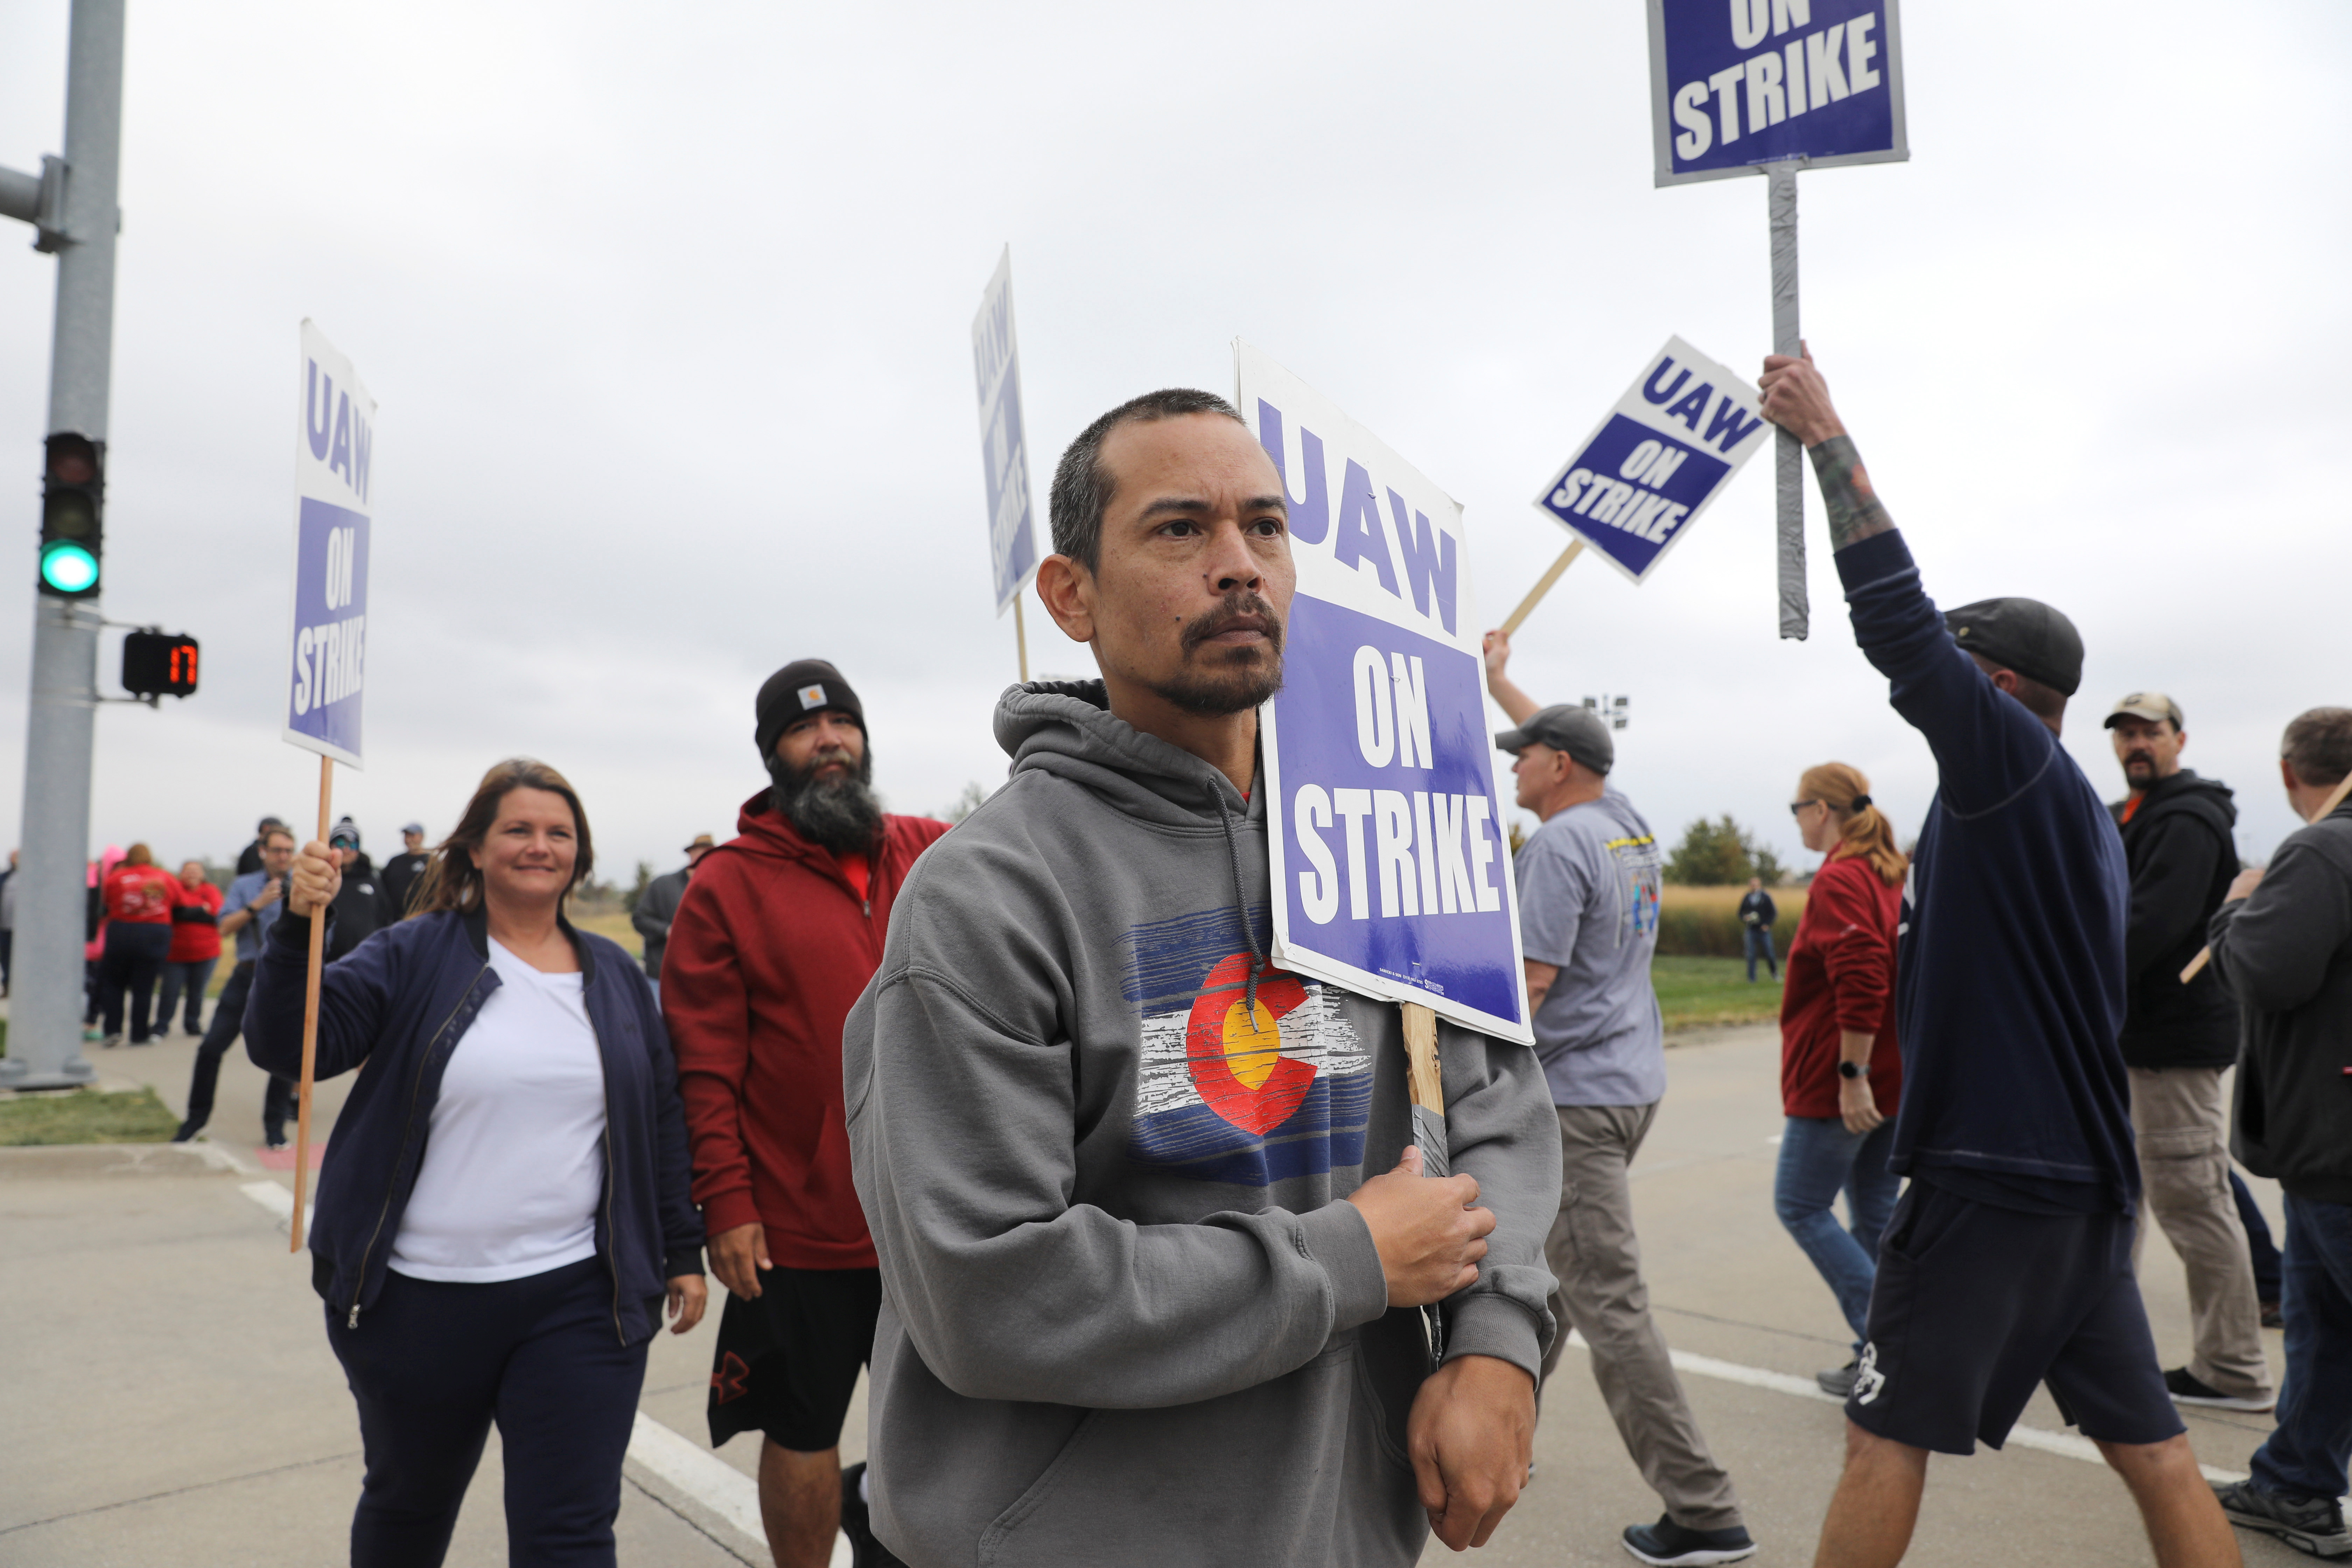 'Strikes are contagious': Wave of labor unrest signals crisis in tight job market